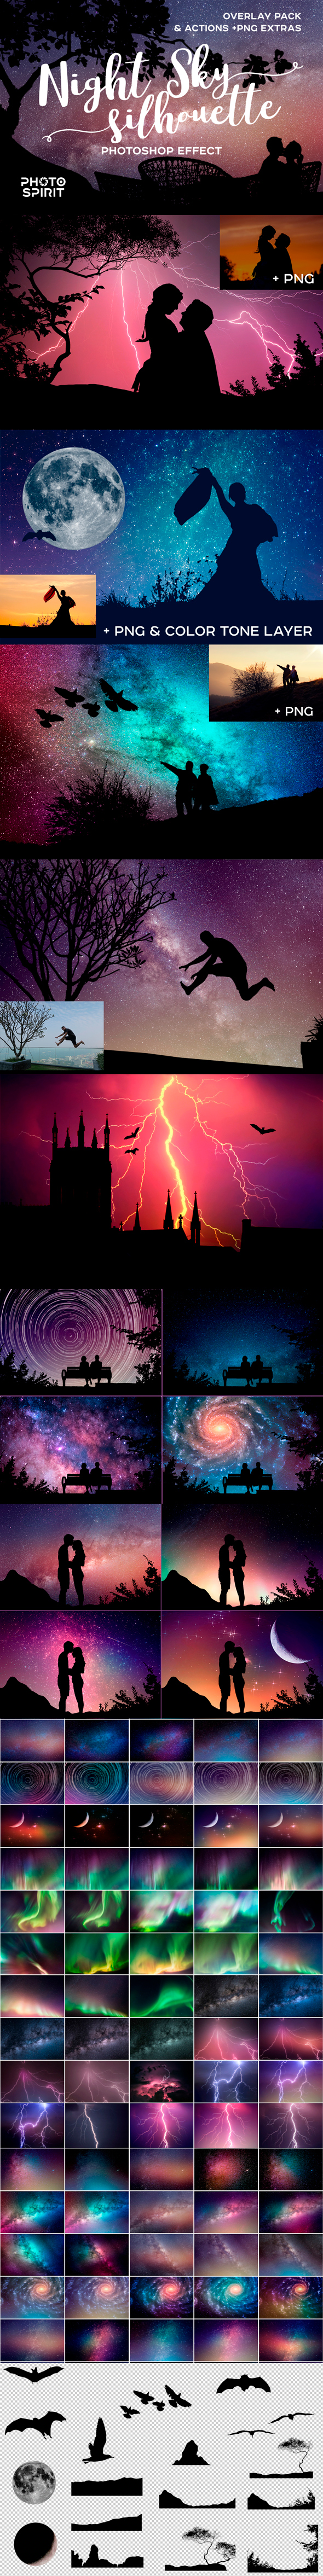 Night Sky Silhouette Actions - Photo Effects Actions